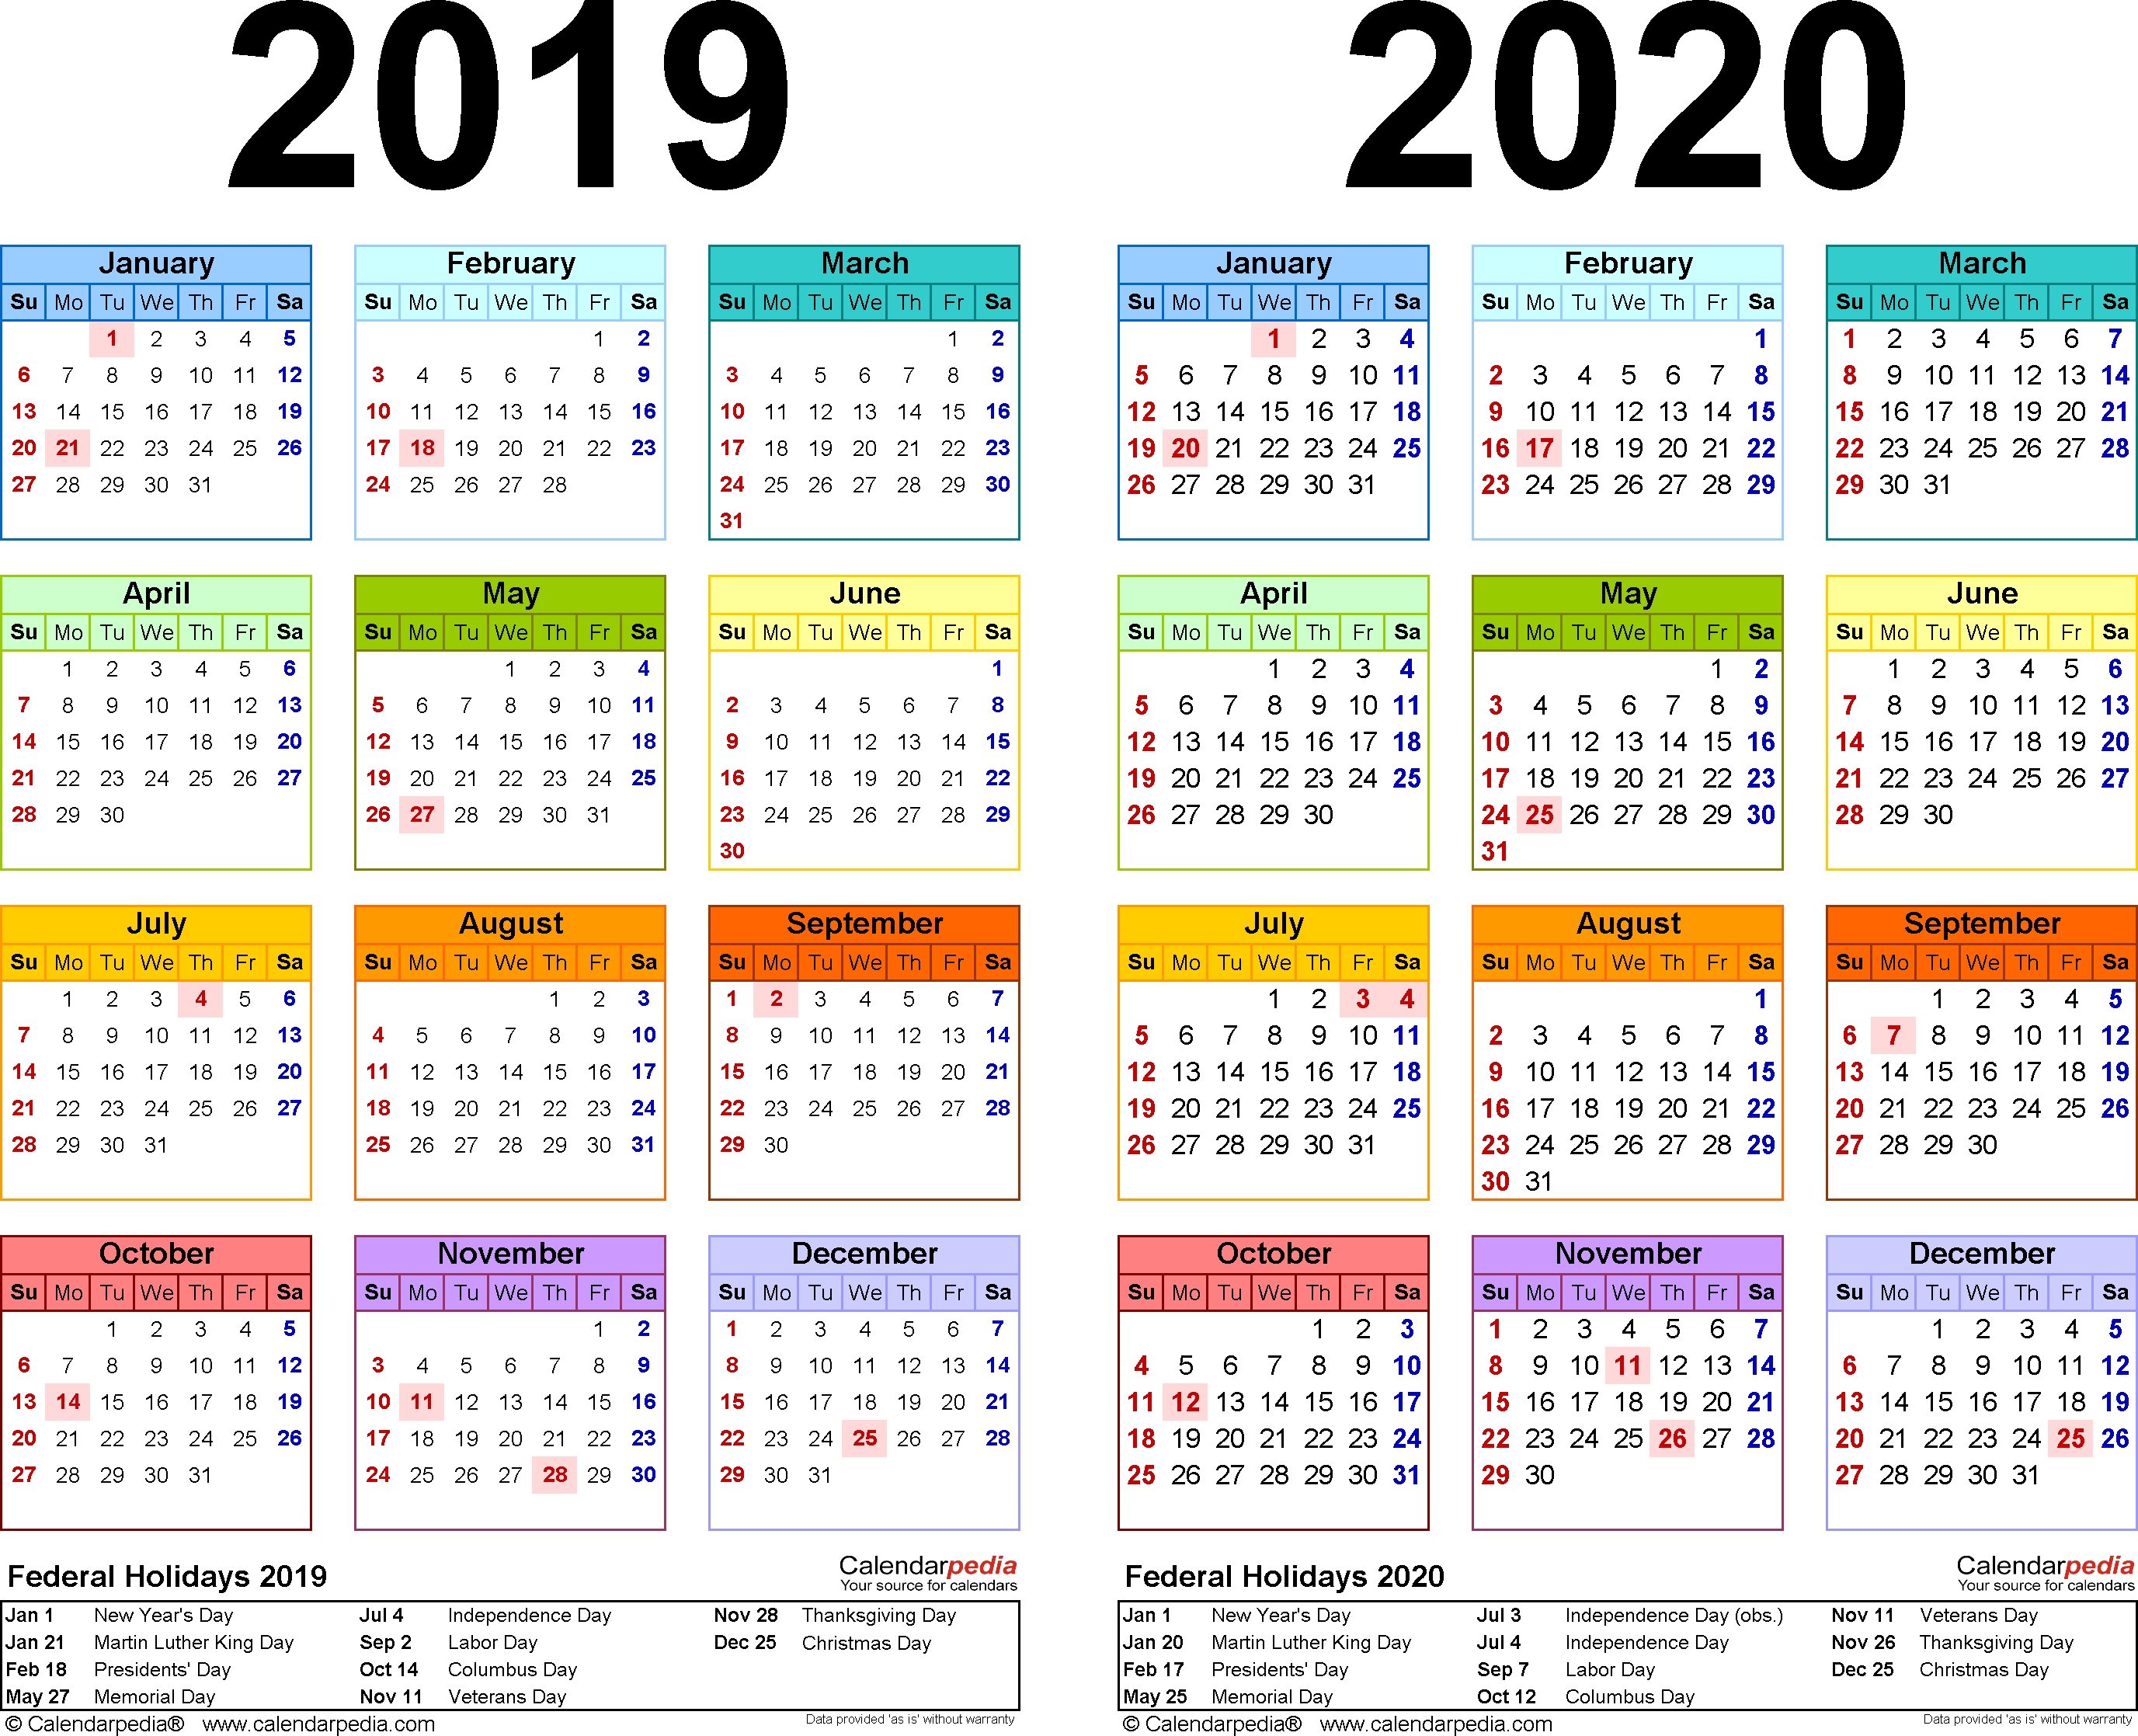 2019-2020 Calendar - Free Printable Two-Year Pdf Calendars inside Printable Month To Month Clalanders Wityh Lines  2019/2020